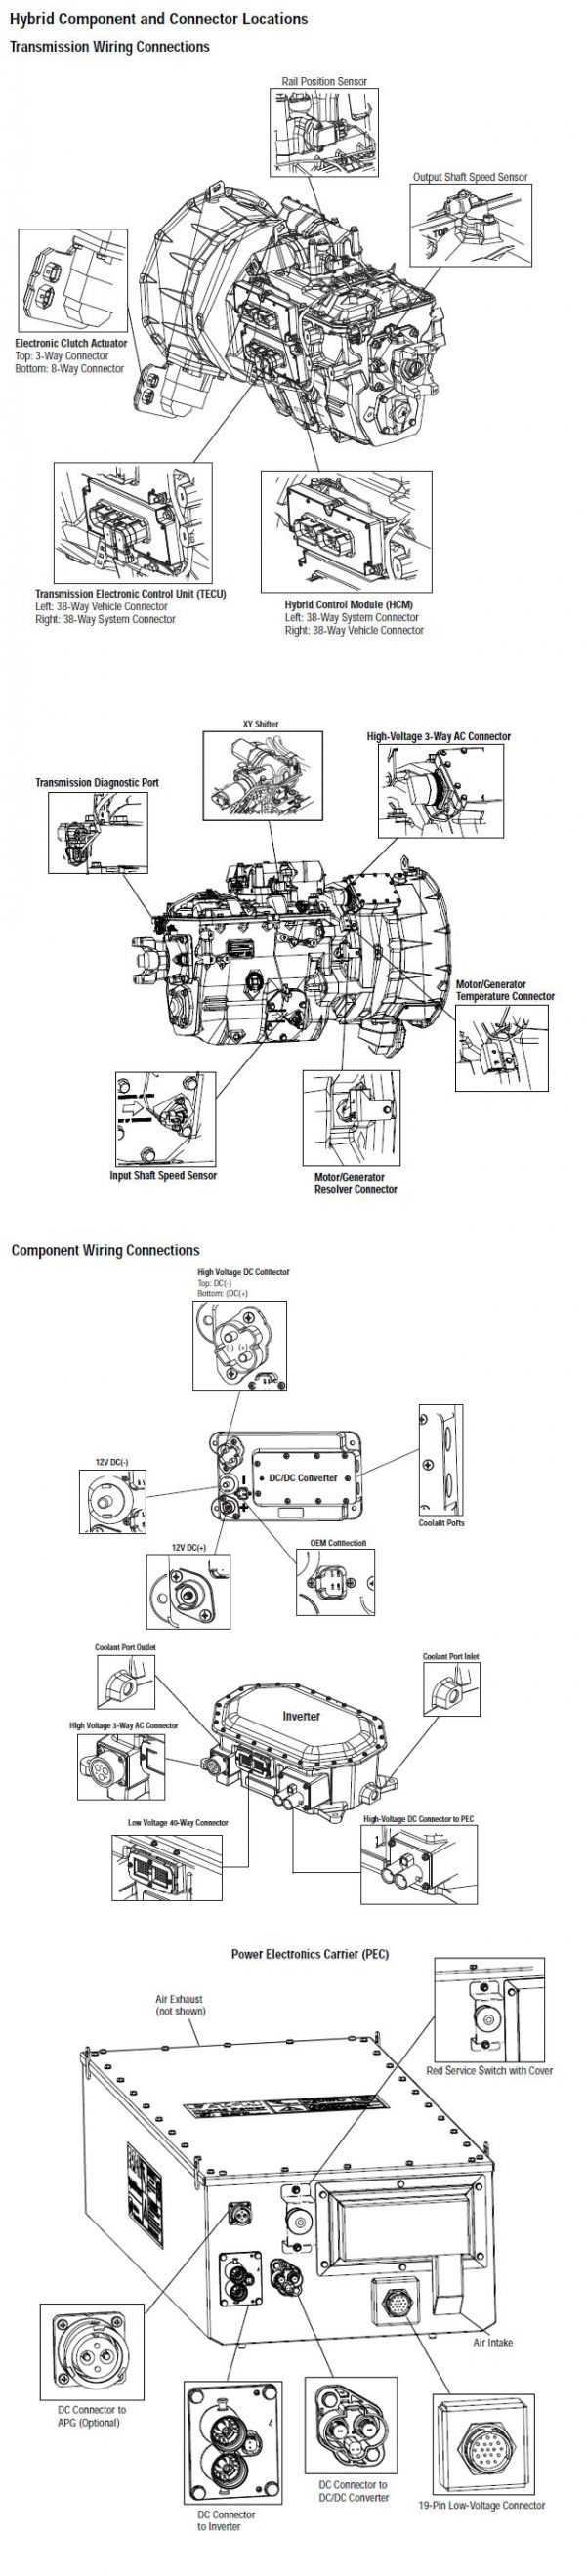 Eaton Hybrid Component and Connector Locations MY09 Systems